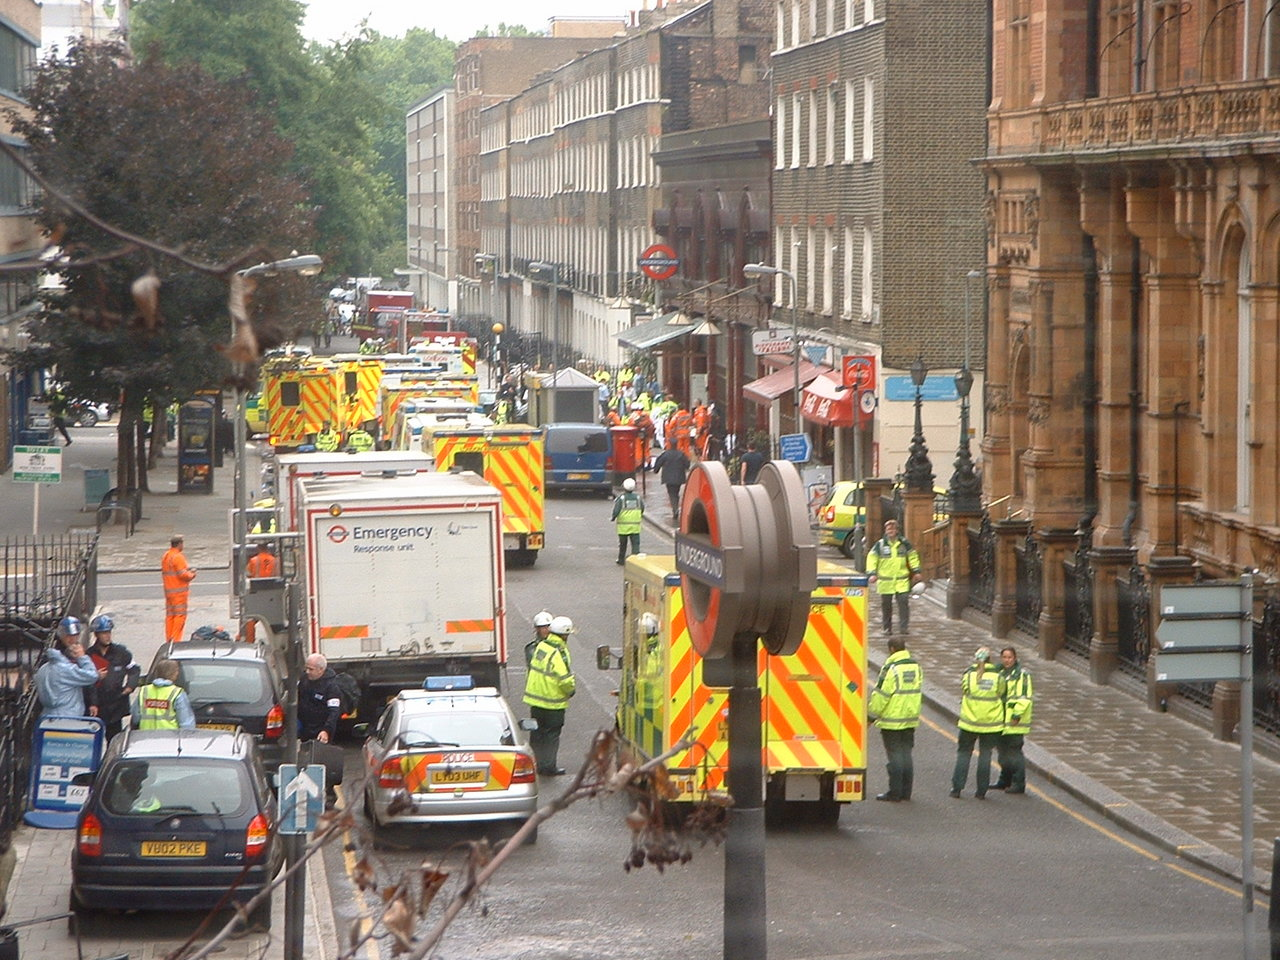 1280px-Russell_square_ambulances